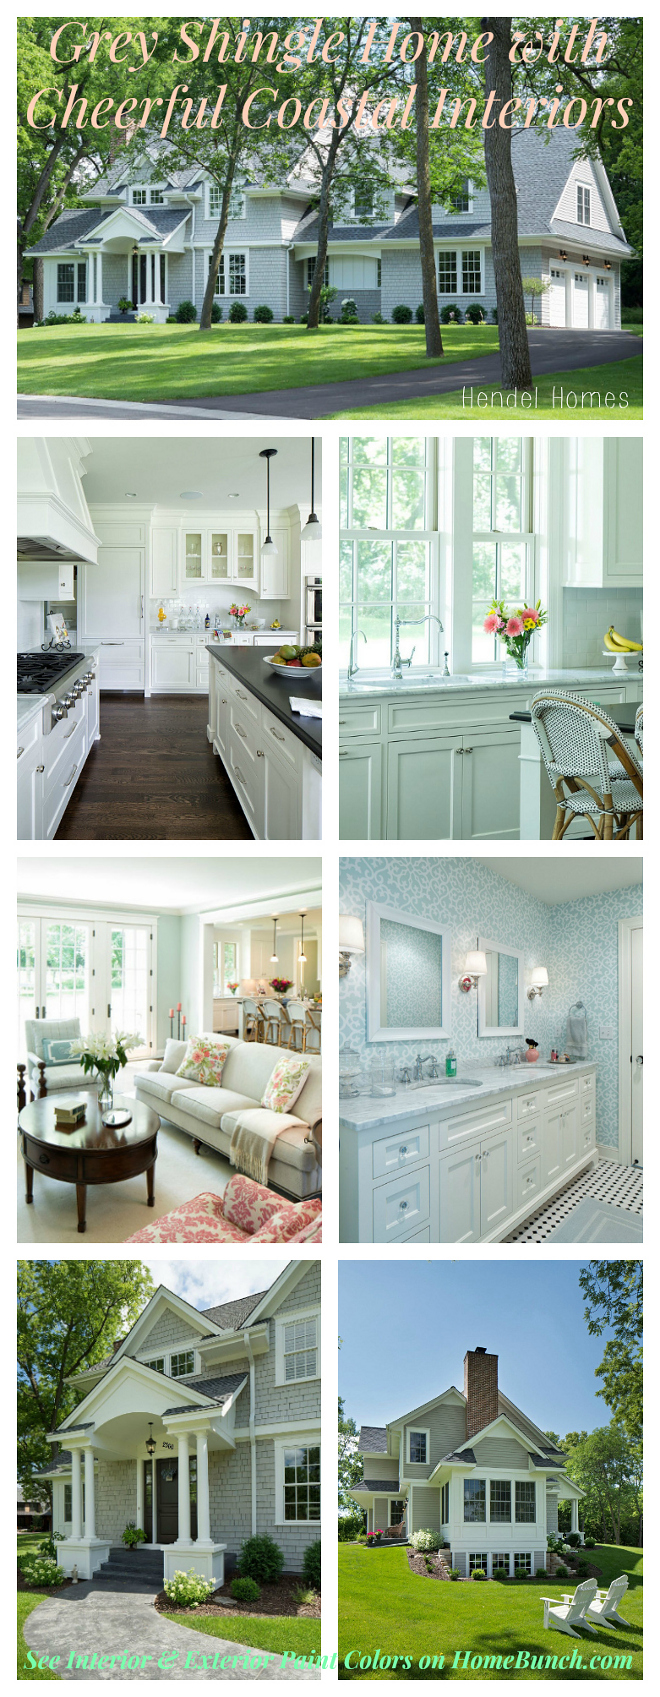 grey-shingle-home-with-cheerful-coastal-interiors